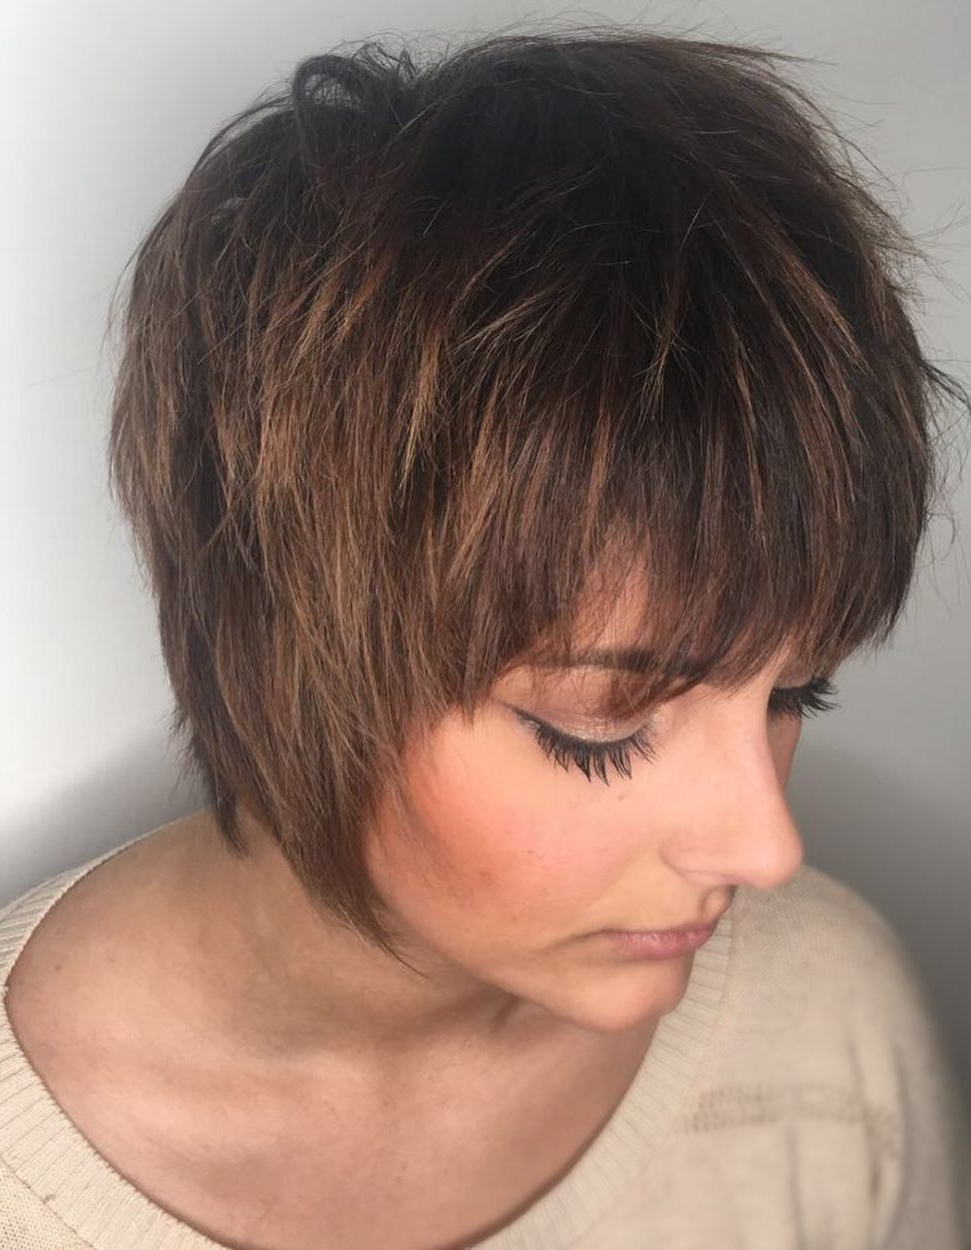 Top 25 Short Shag Haircuts Right Now – Short Bob Cuts Inside Latest Classic Chin Length Shag Haircuts (View 10 of 20)